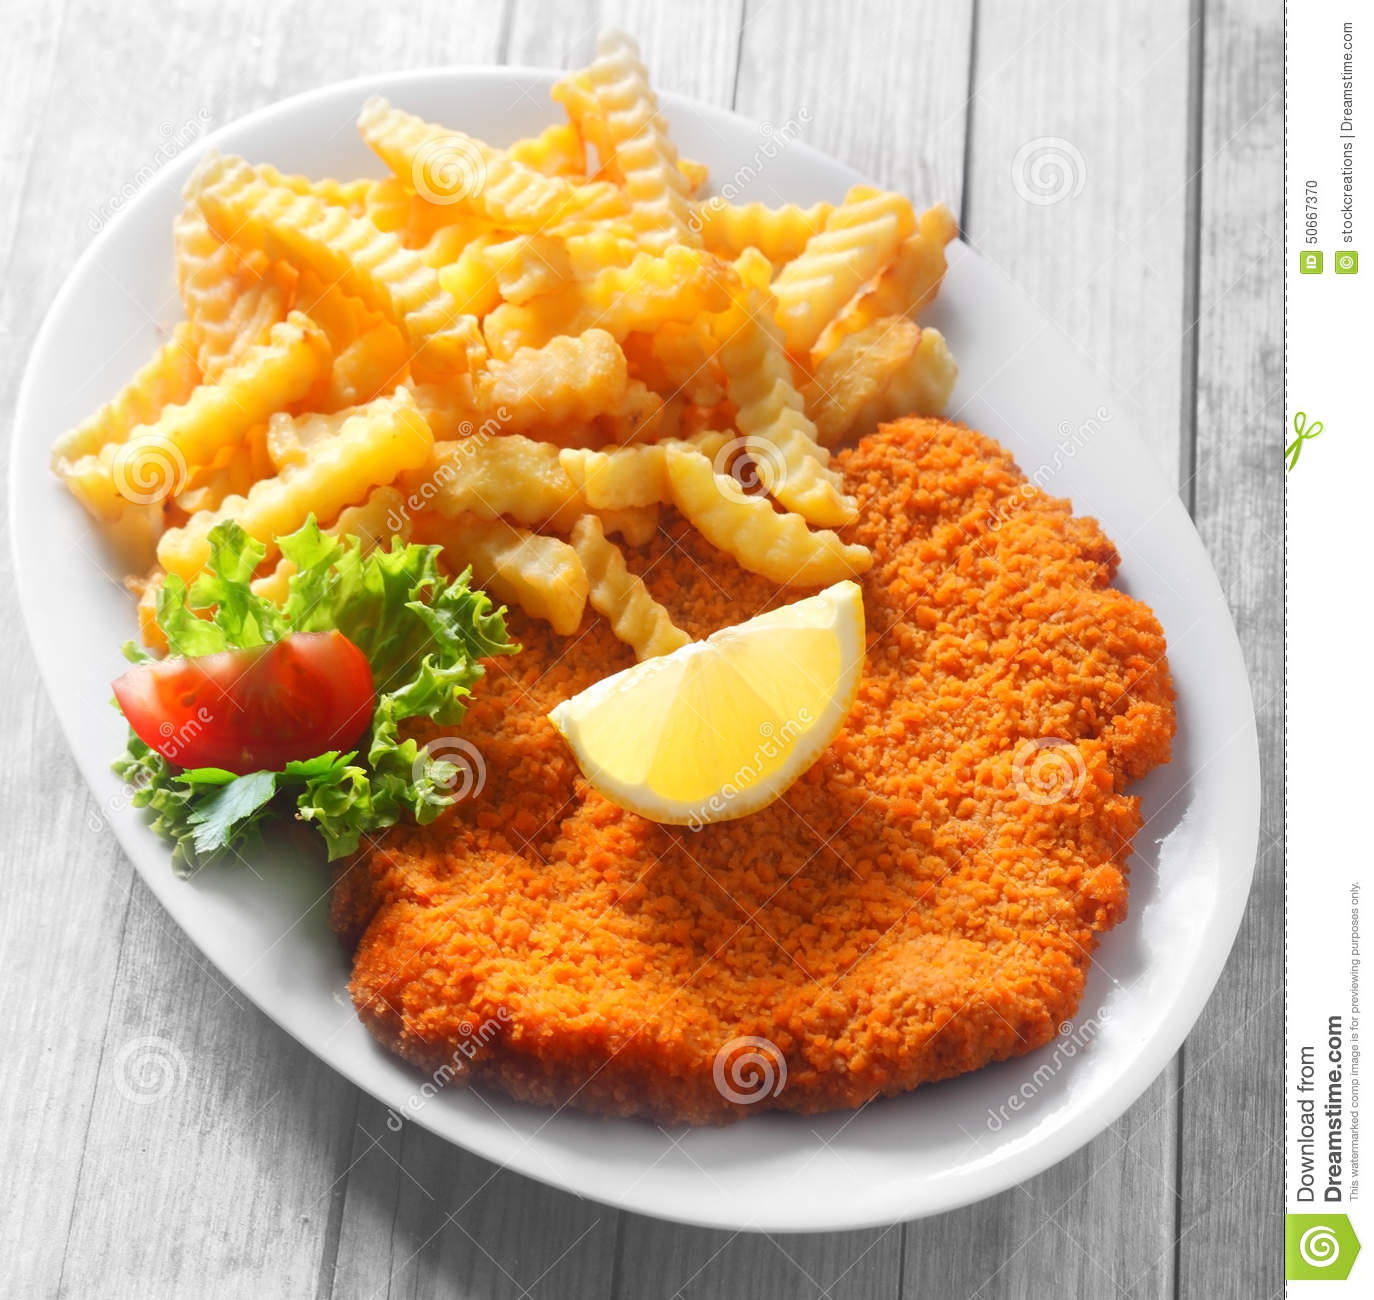 Gourmet Tasty Crumbled Schnitzel And Crispy Fries Stock Photo.